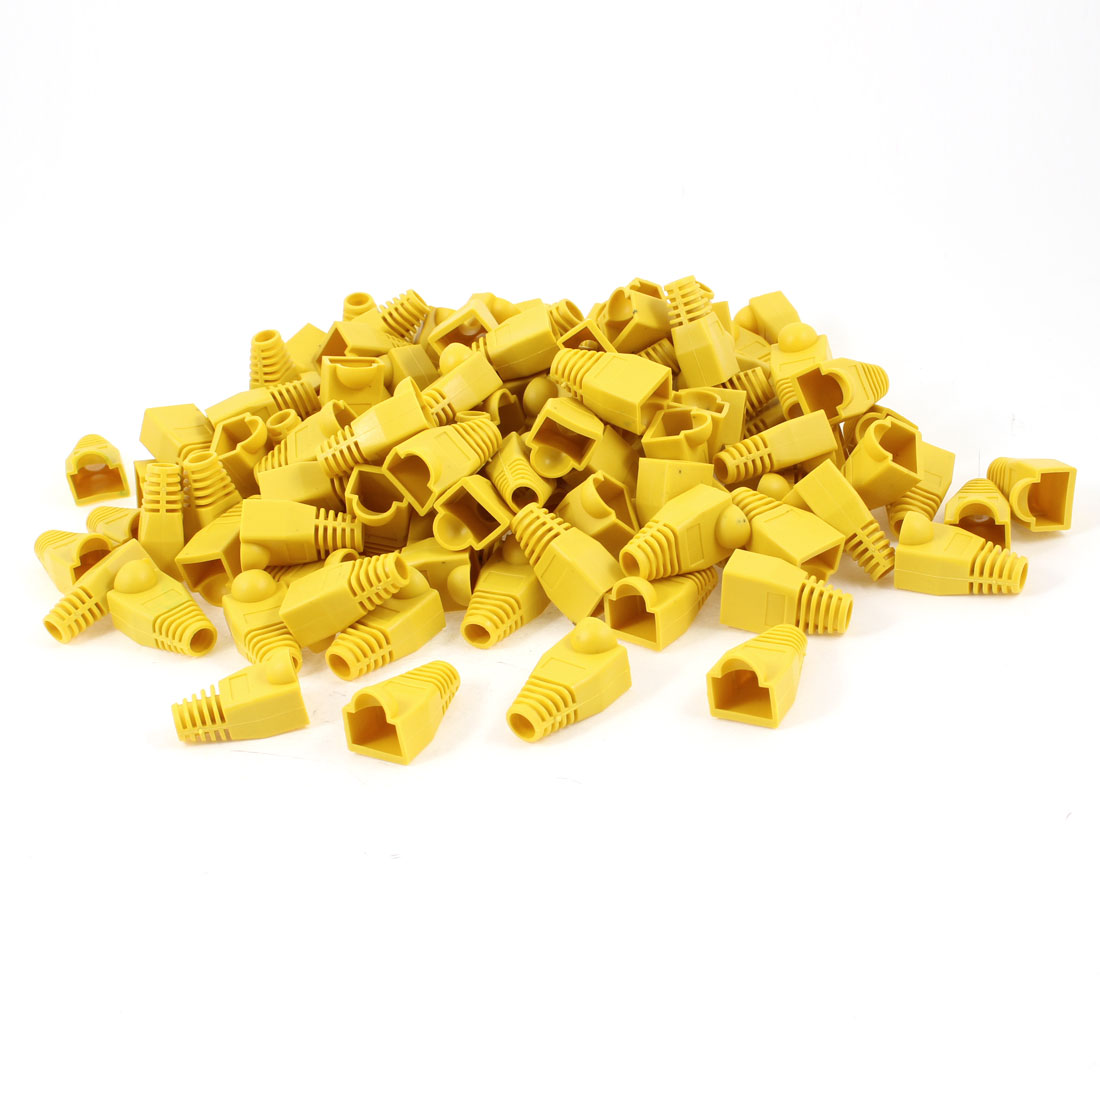 200 Pcs Yellow Soft Plastic Hood Cover Boots for RJ45 Plug Connector